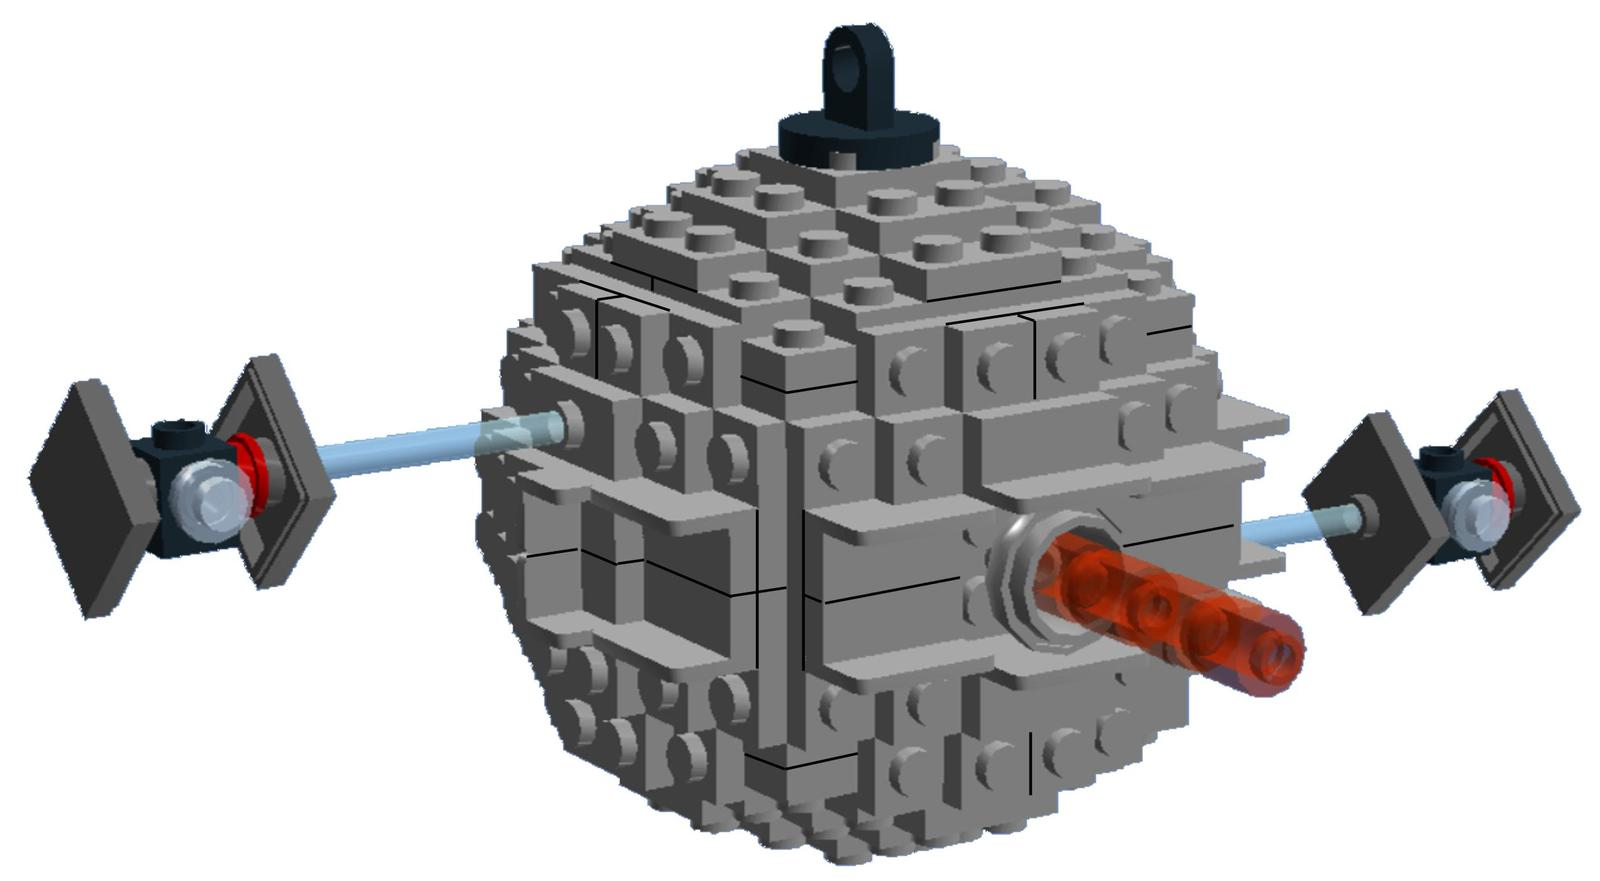 BrickCrafts Build-Your-Own LEGO® Starkiller Base Ornament (Death Star III)